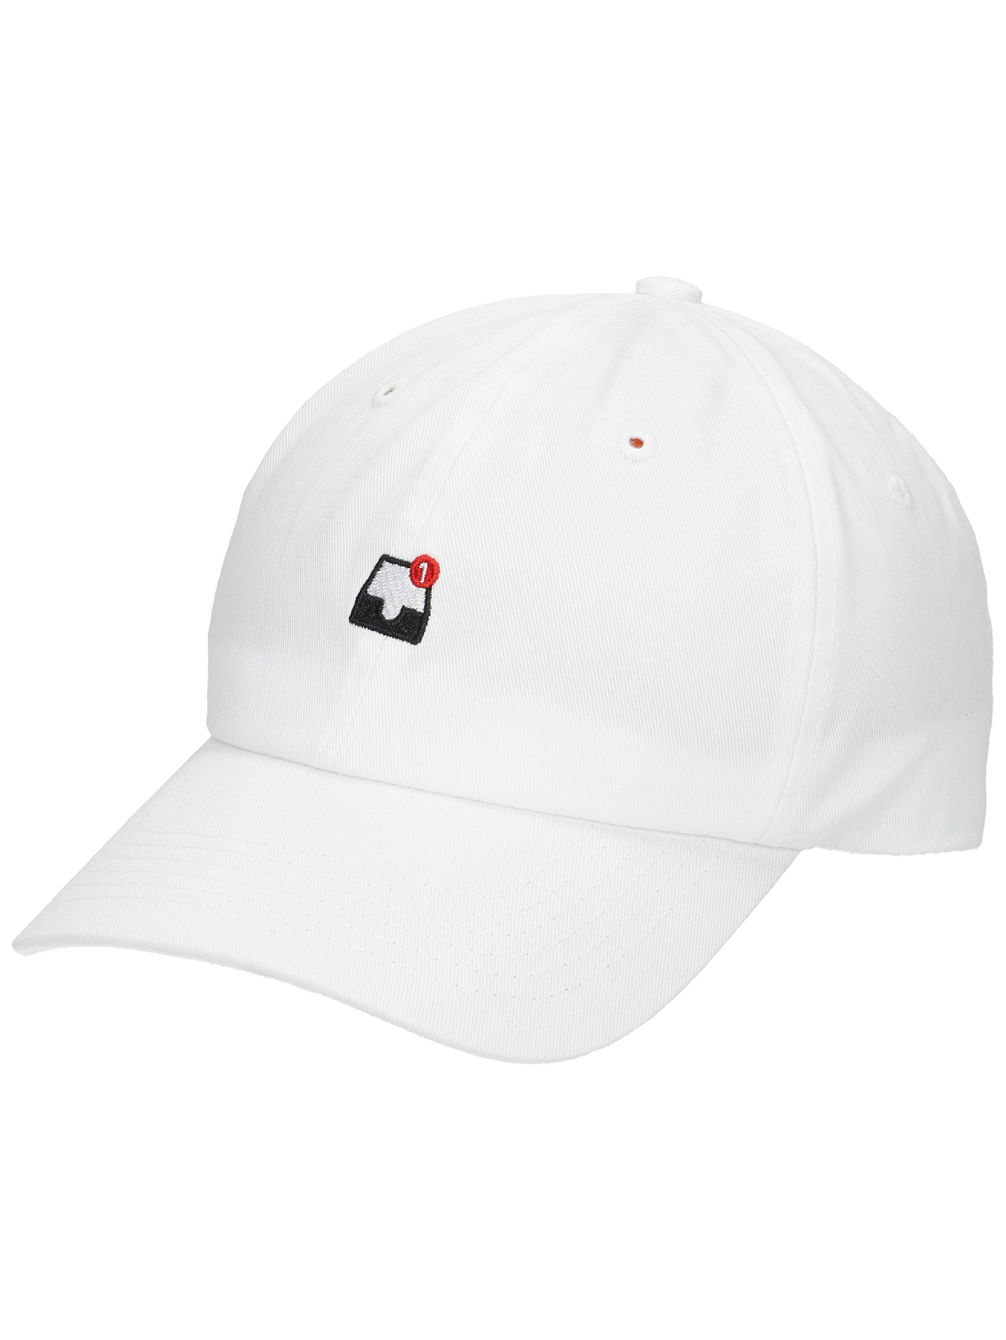 It Goes White Dad Cap